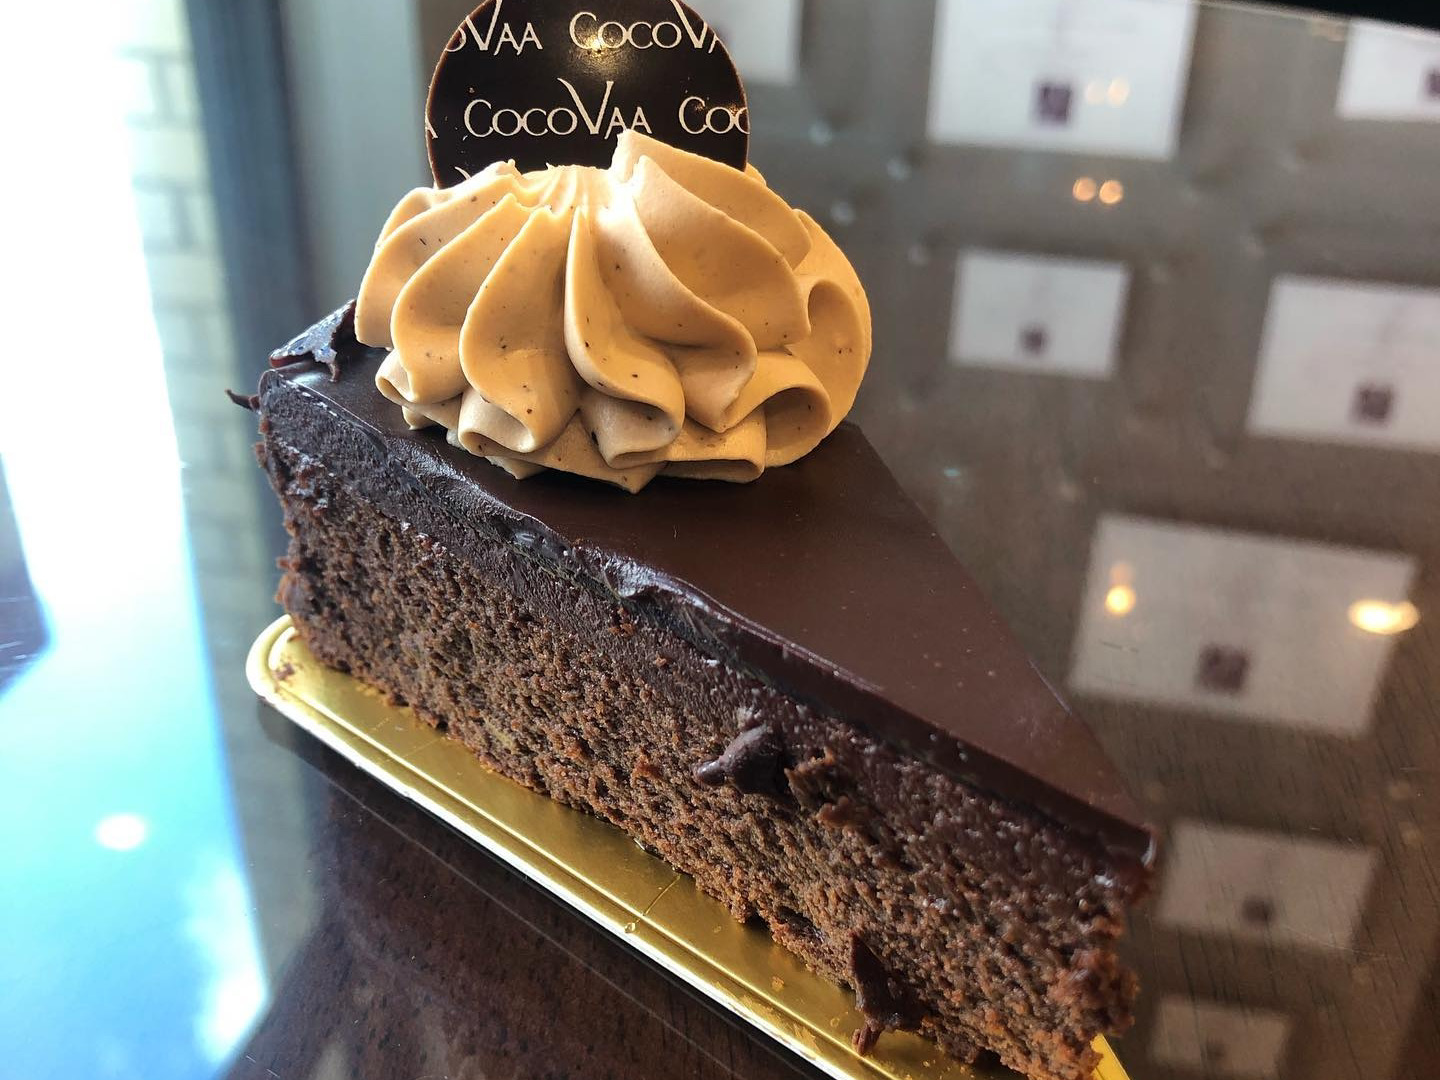 Slice of chocolate cake at CocoVaa Chocolatier